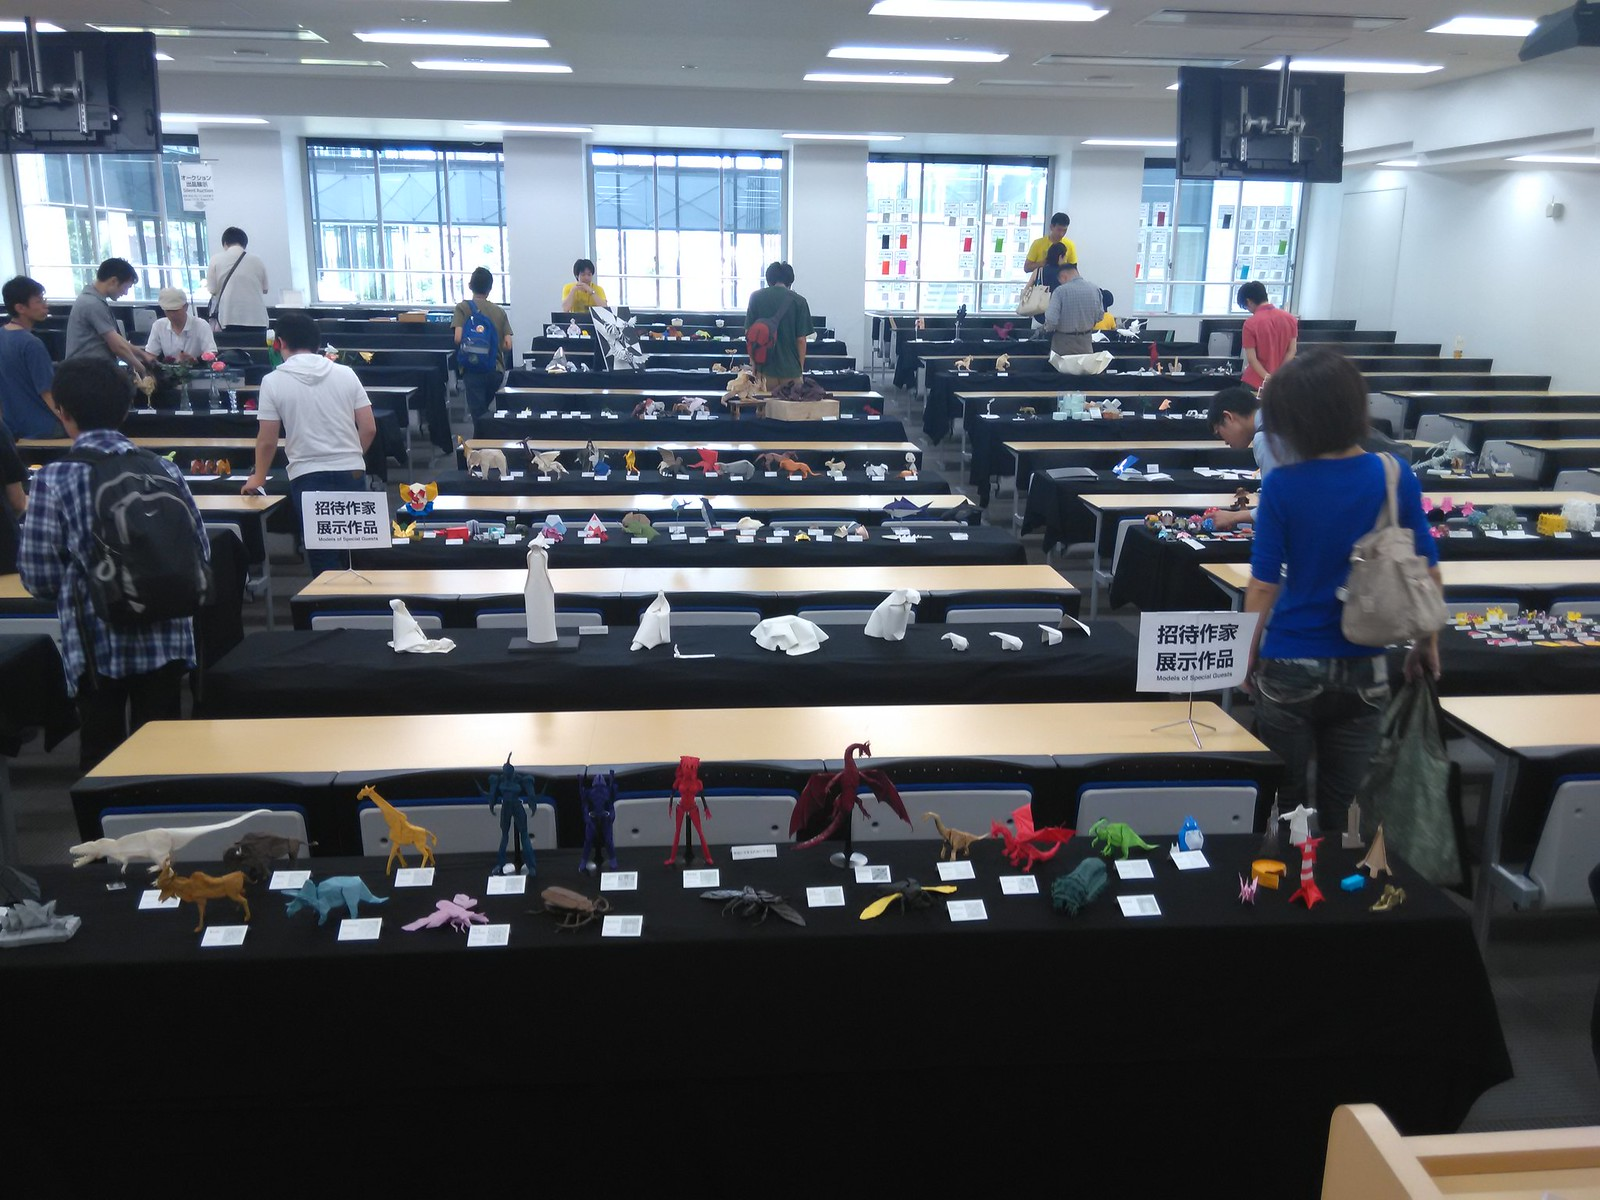 Origami Tanteidan Convention - My Table